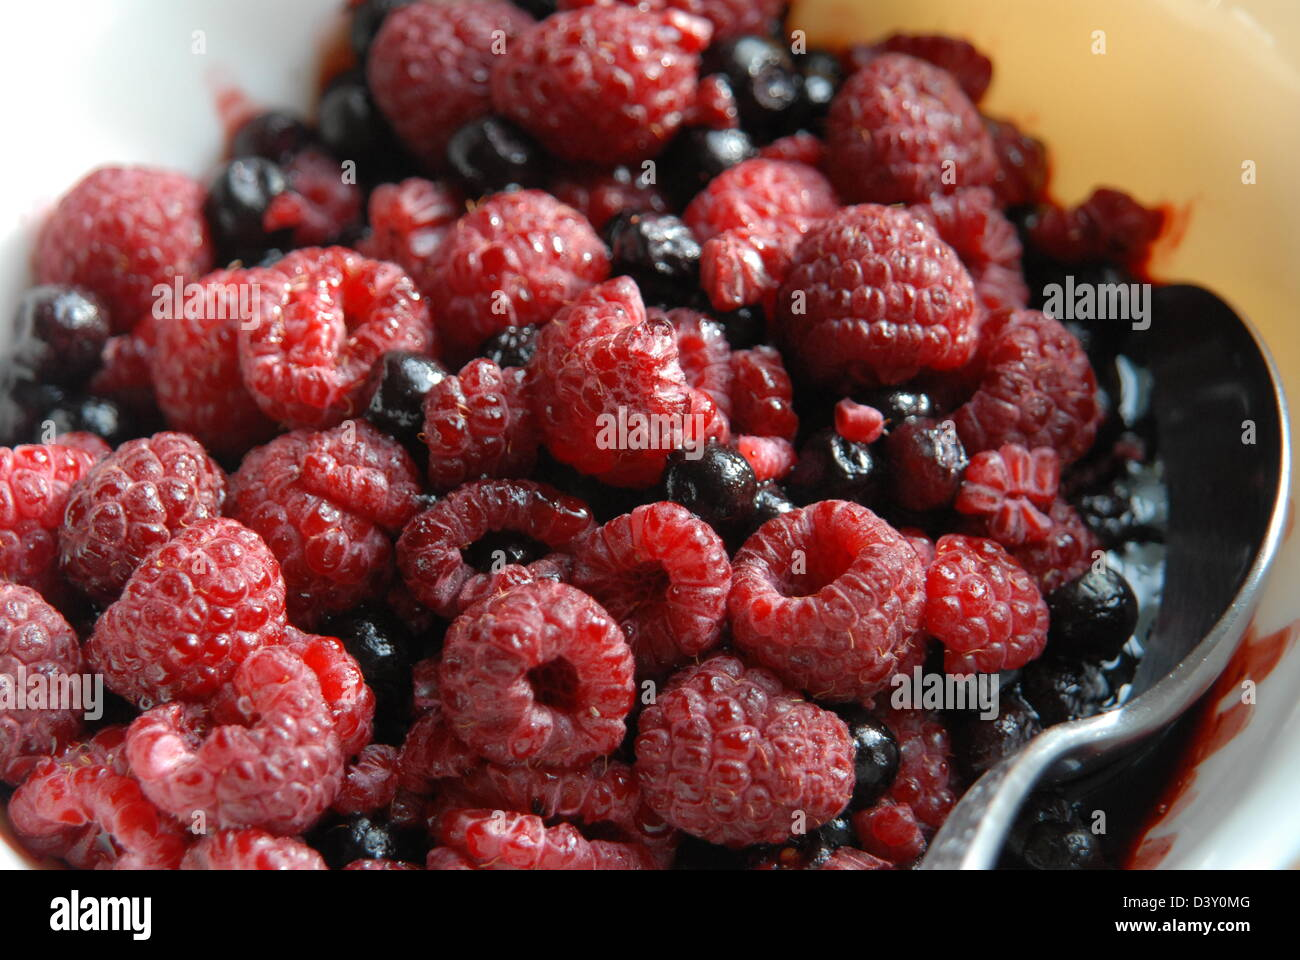 Raspberries and blueberries, healthy dessert. - Stock Image